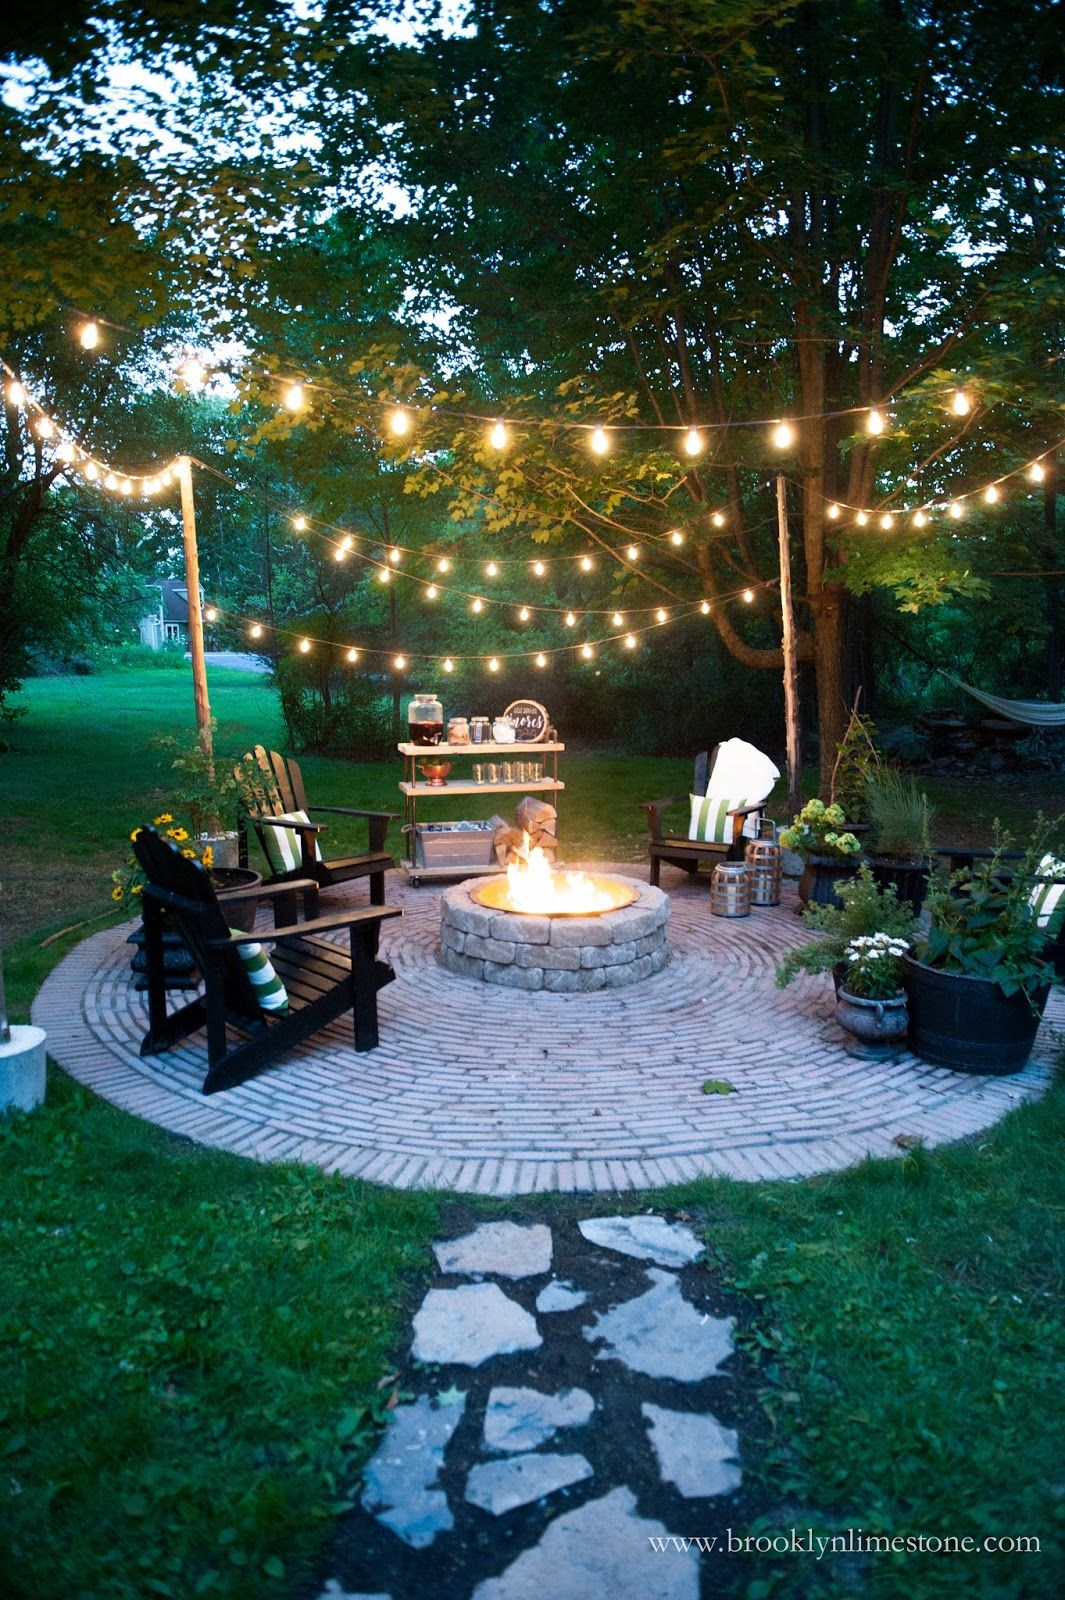 Beleuchtung Sitzecke Garten Fall Friendly Ways To Keep Your Patio Party Going Through